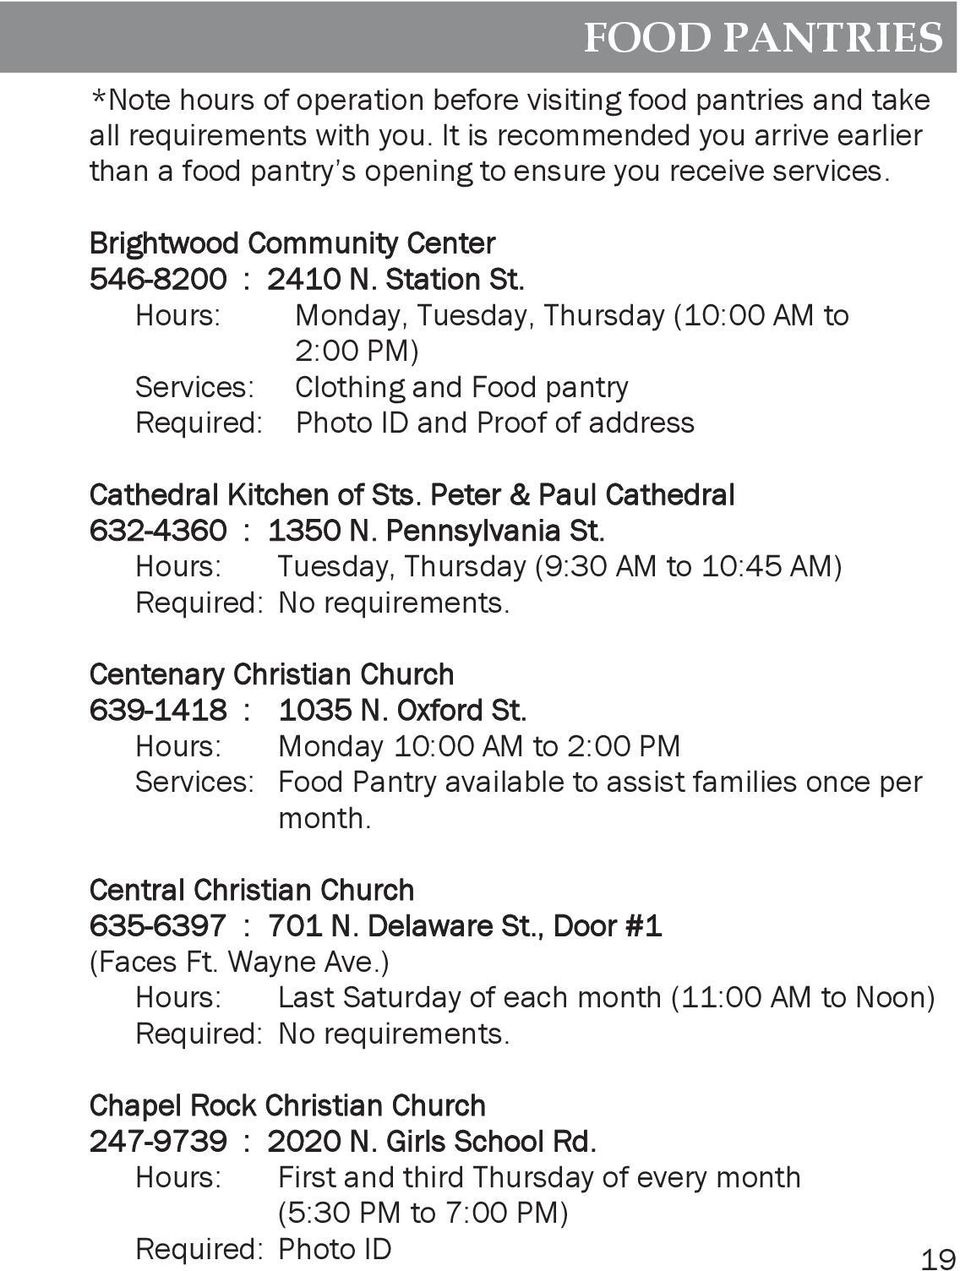 Hours: Monday, Tuesday, Thursday (10:00 AM to 2:00 PM) Services: Clothing and Food pantry Required: Photo ID and Proof of address Cathedral Kitchen of Sts. Peter & Paul Cathedral 632-4360 : 1350 N.